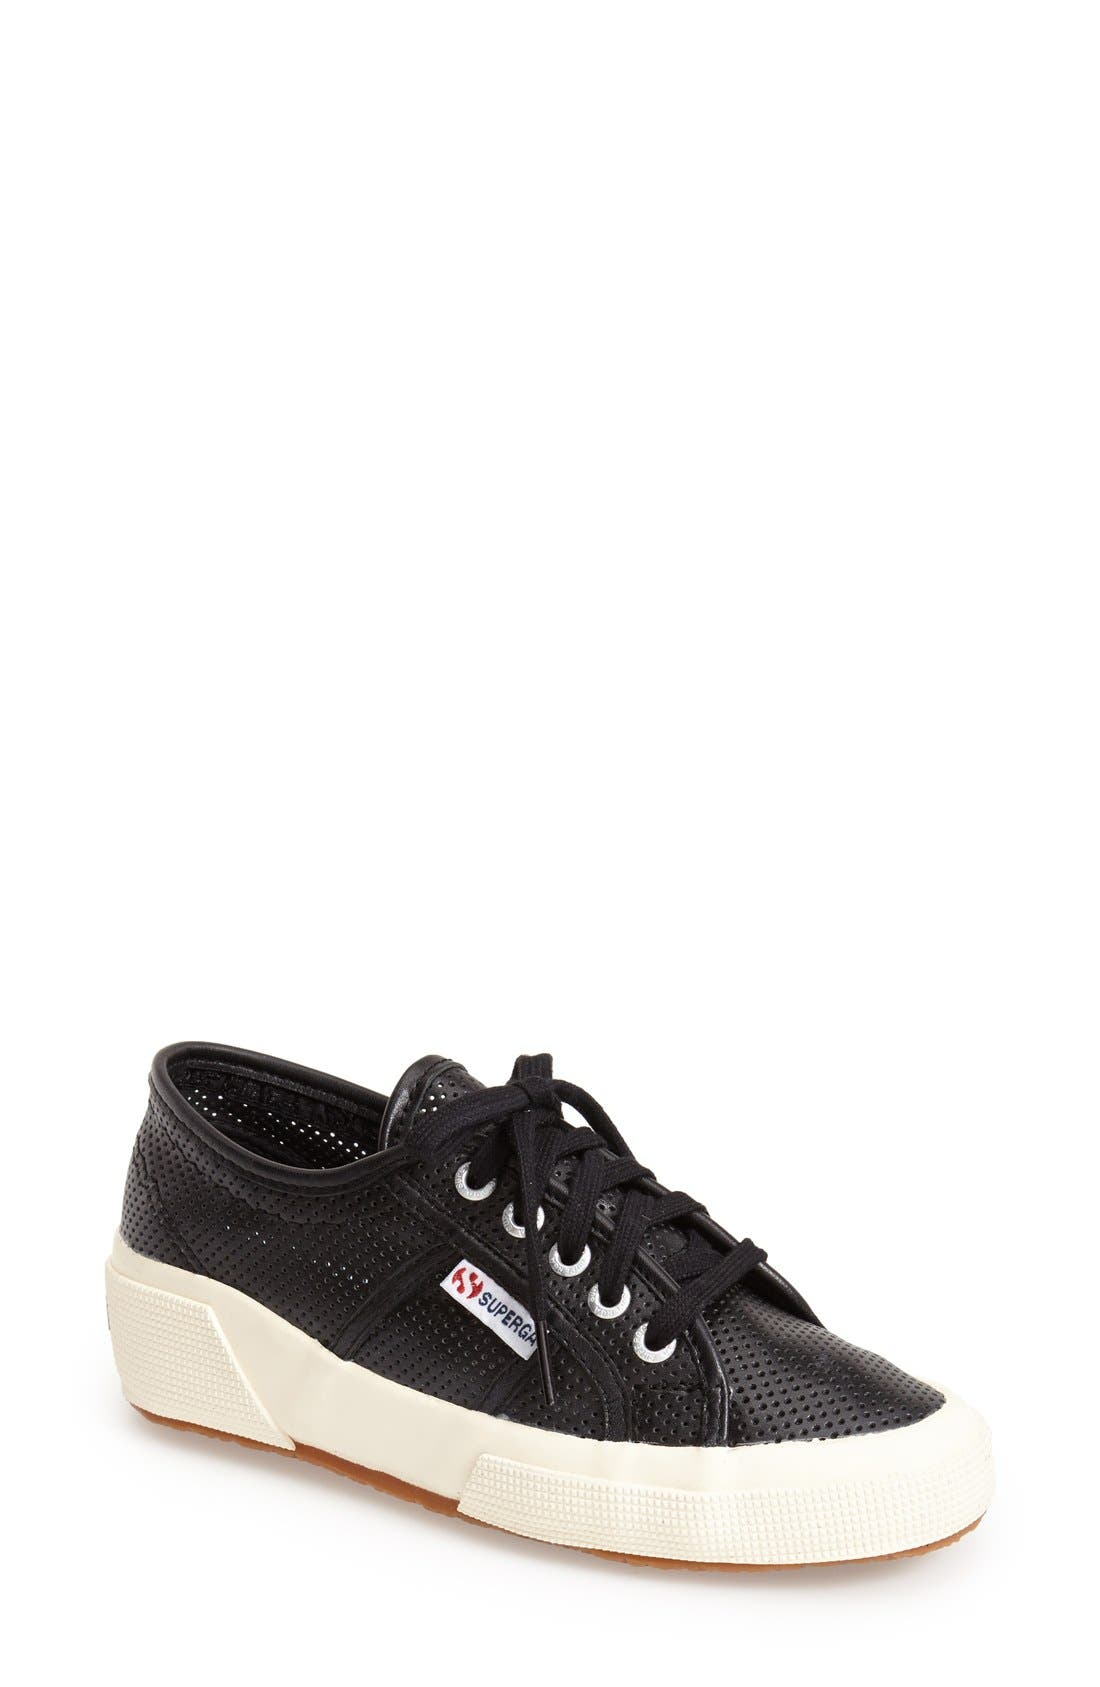 Alternate Image 1 Selected - Superga 'Perforated Cotu' Leather Sneaker (Women)